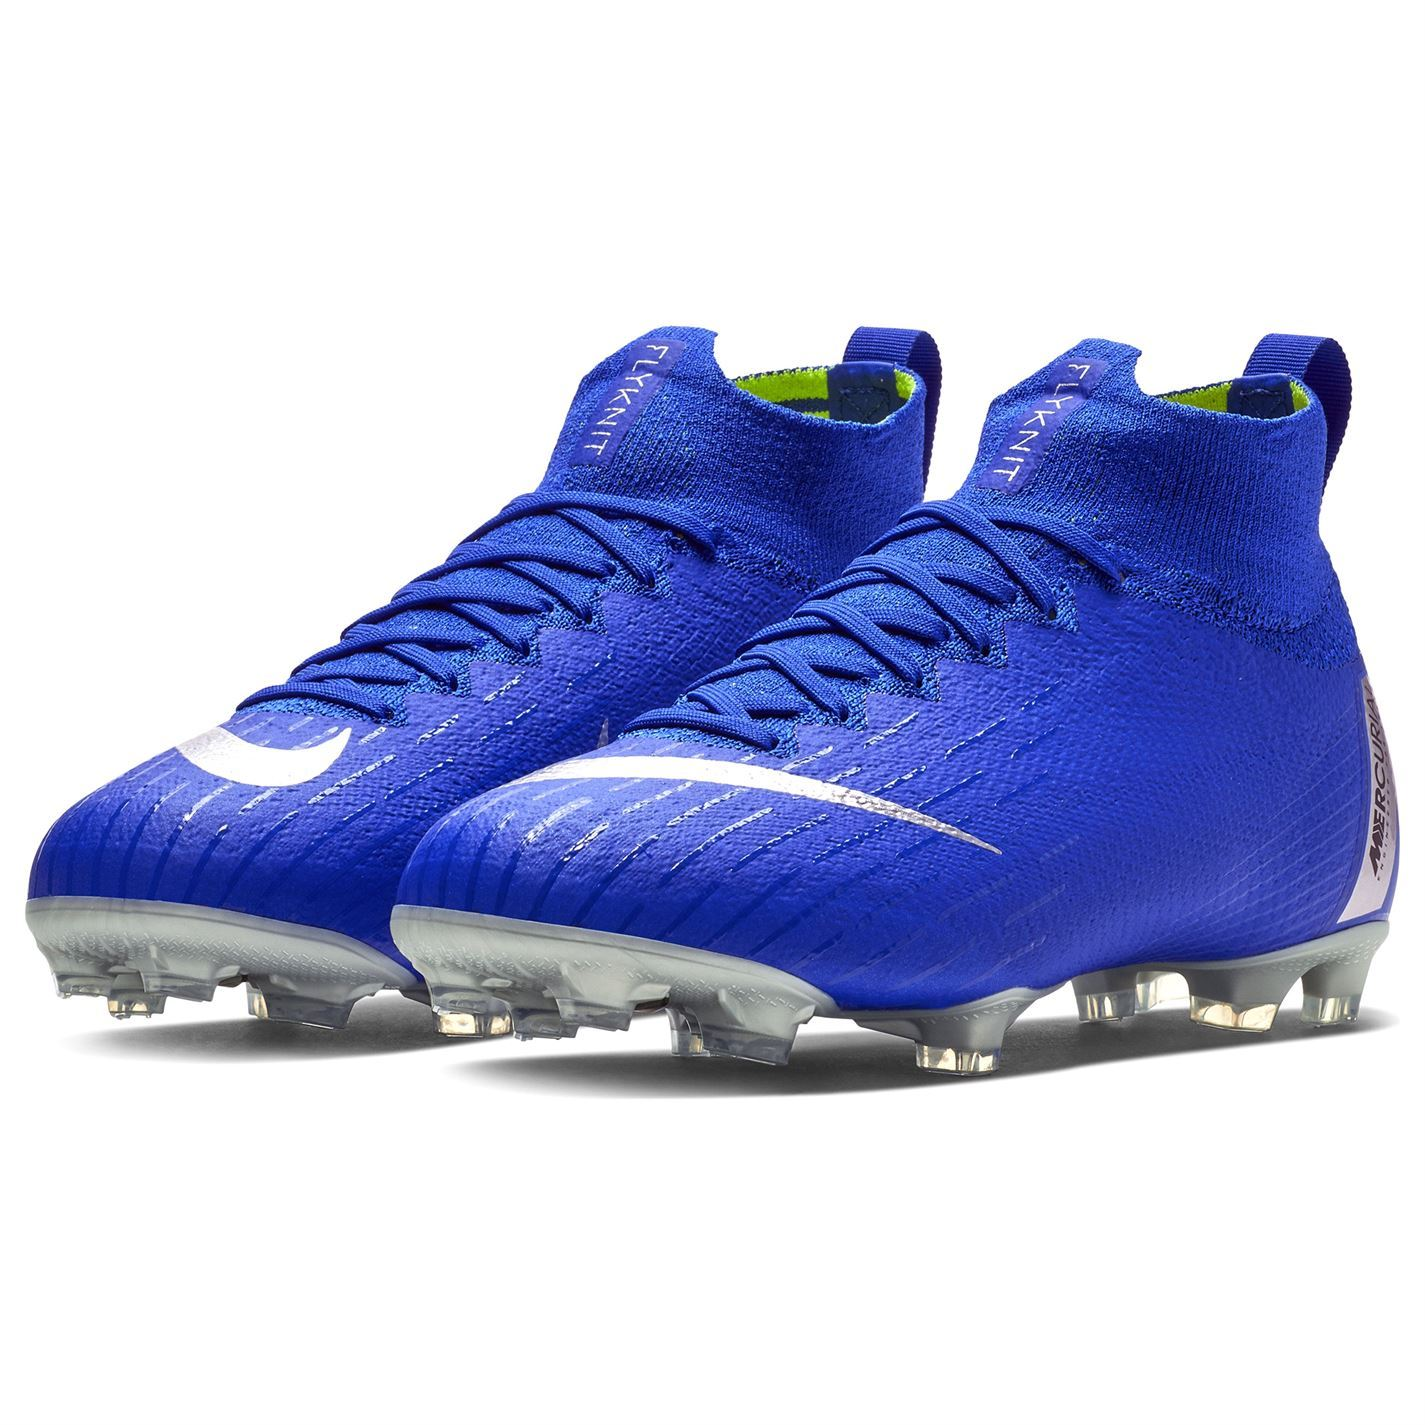 the best attitude 252b7 99a0f Nike-Mercurial-Superfly-Elite-Football-Boots-Firm-Ground-